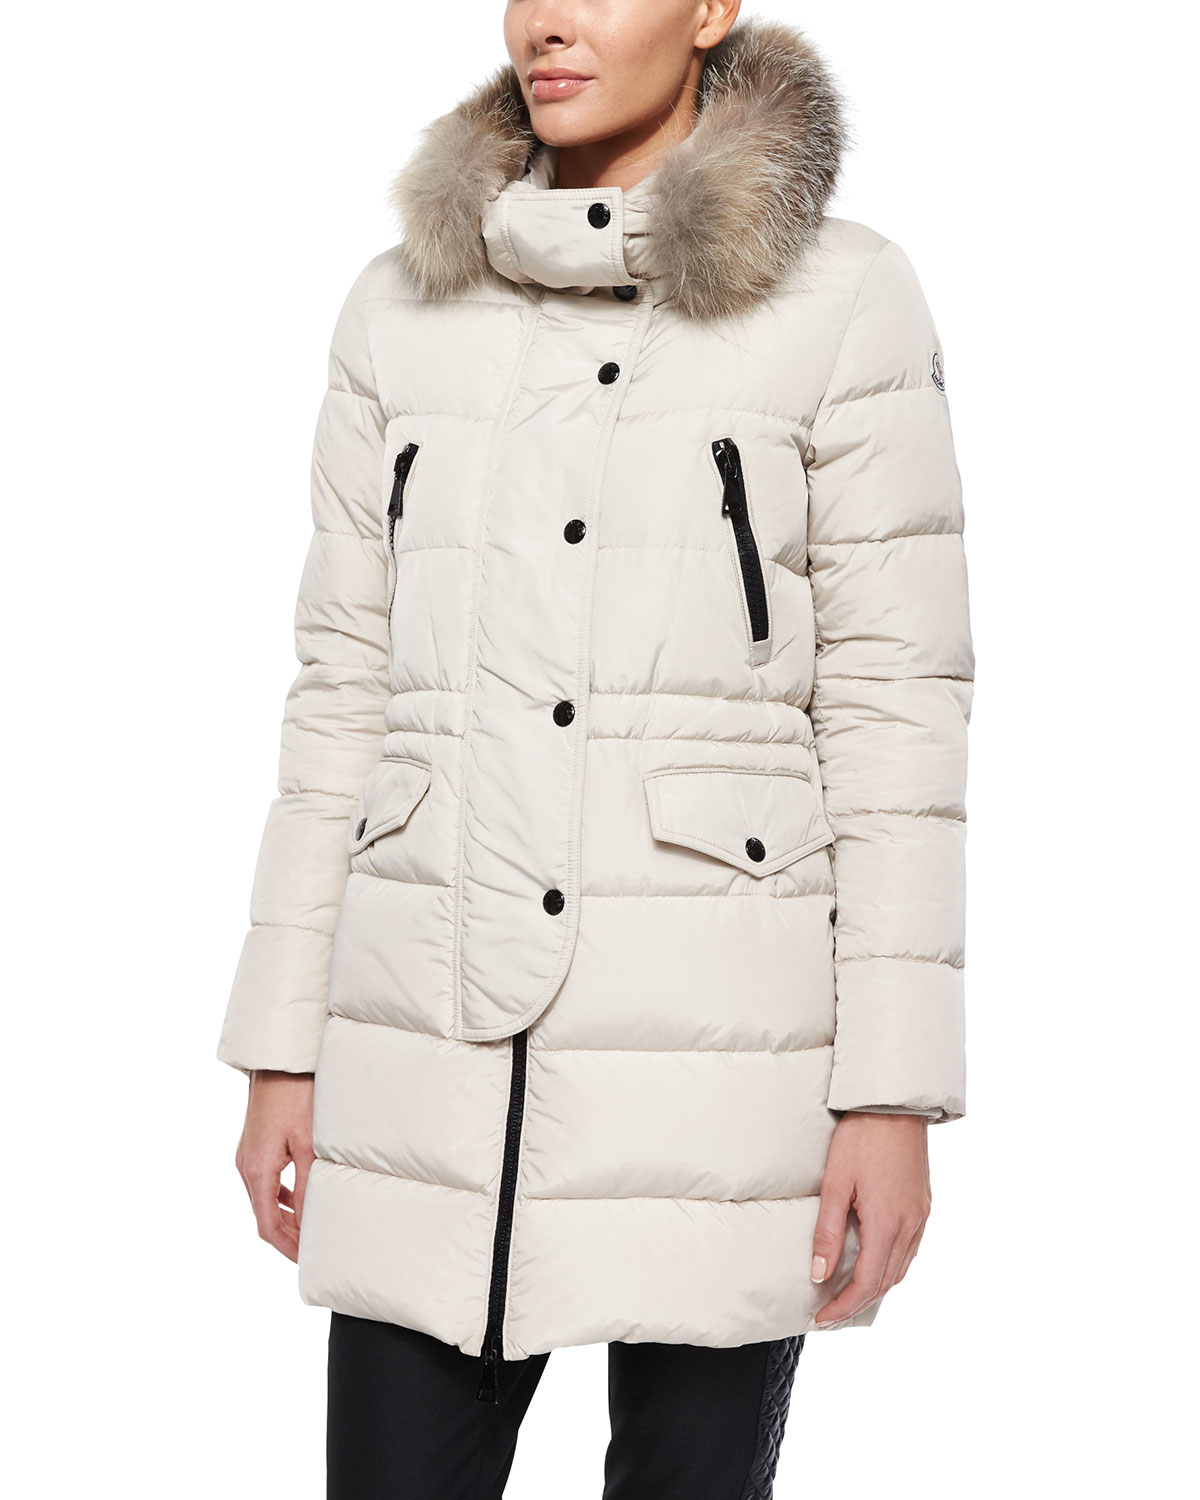 61440fcee closeout moncler coat khloe white a6771 2fb07